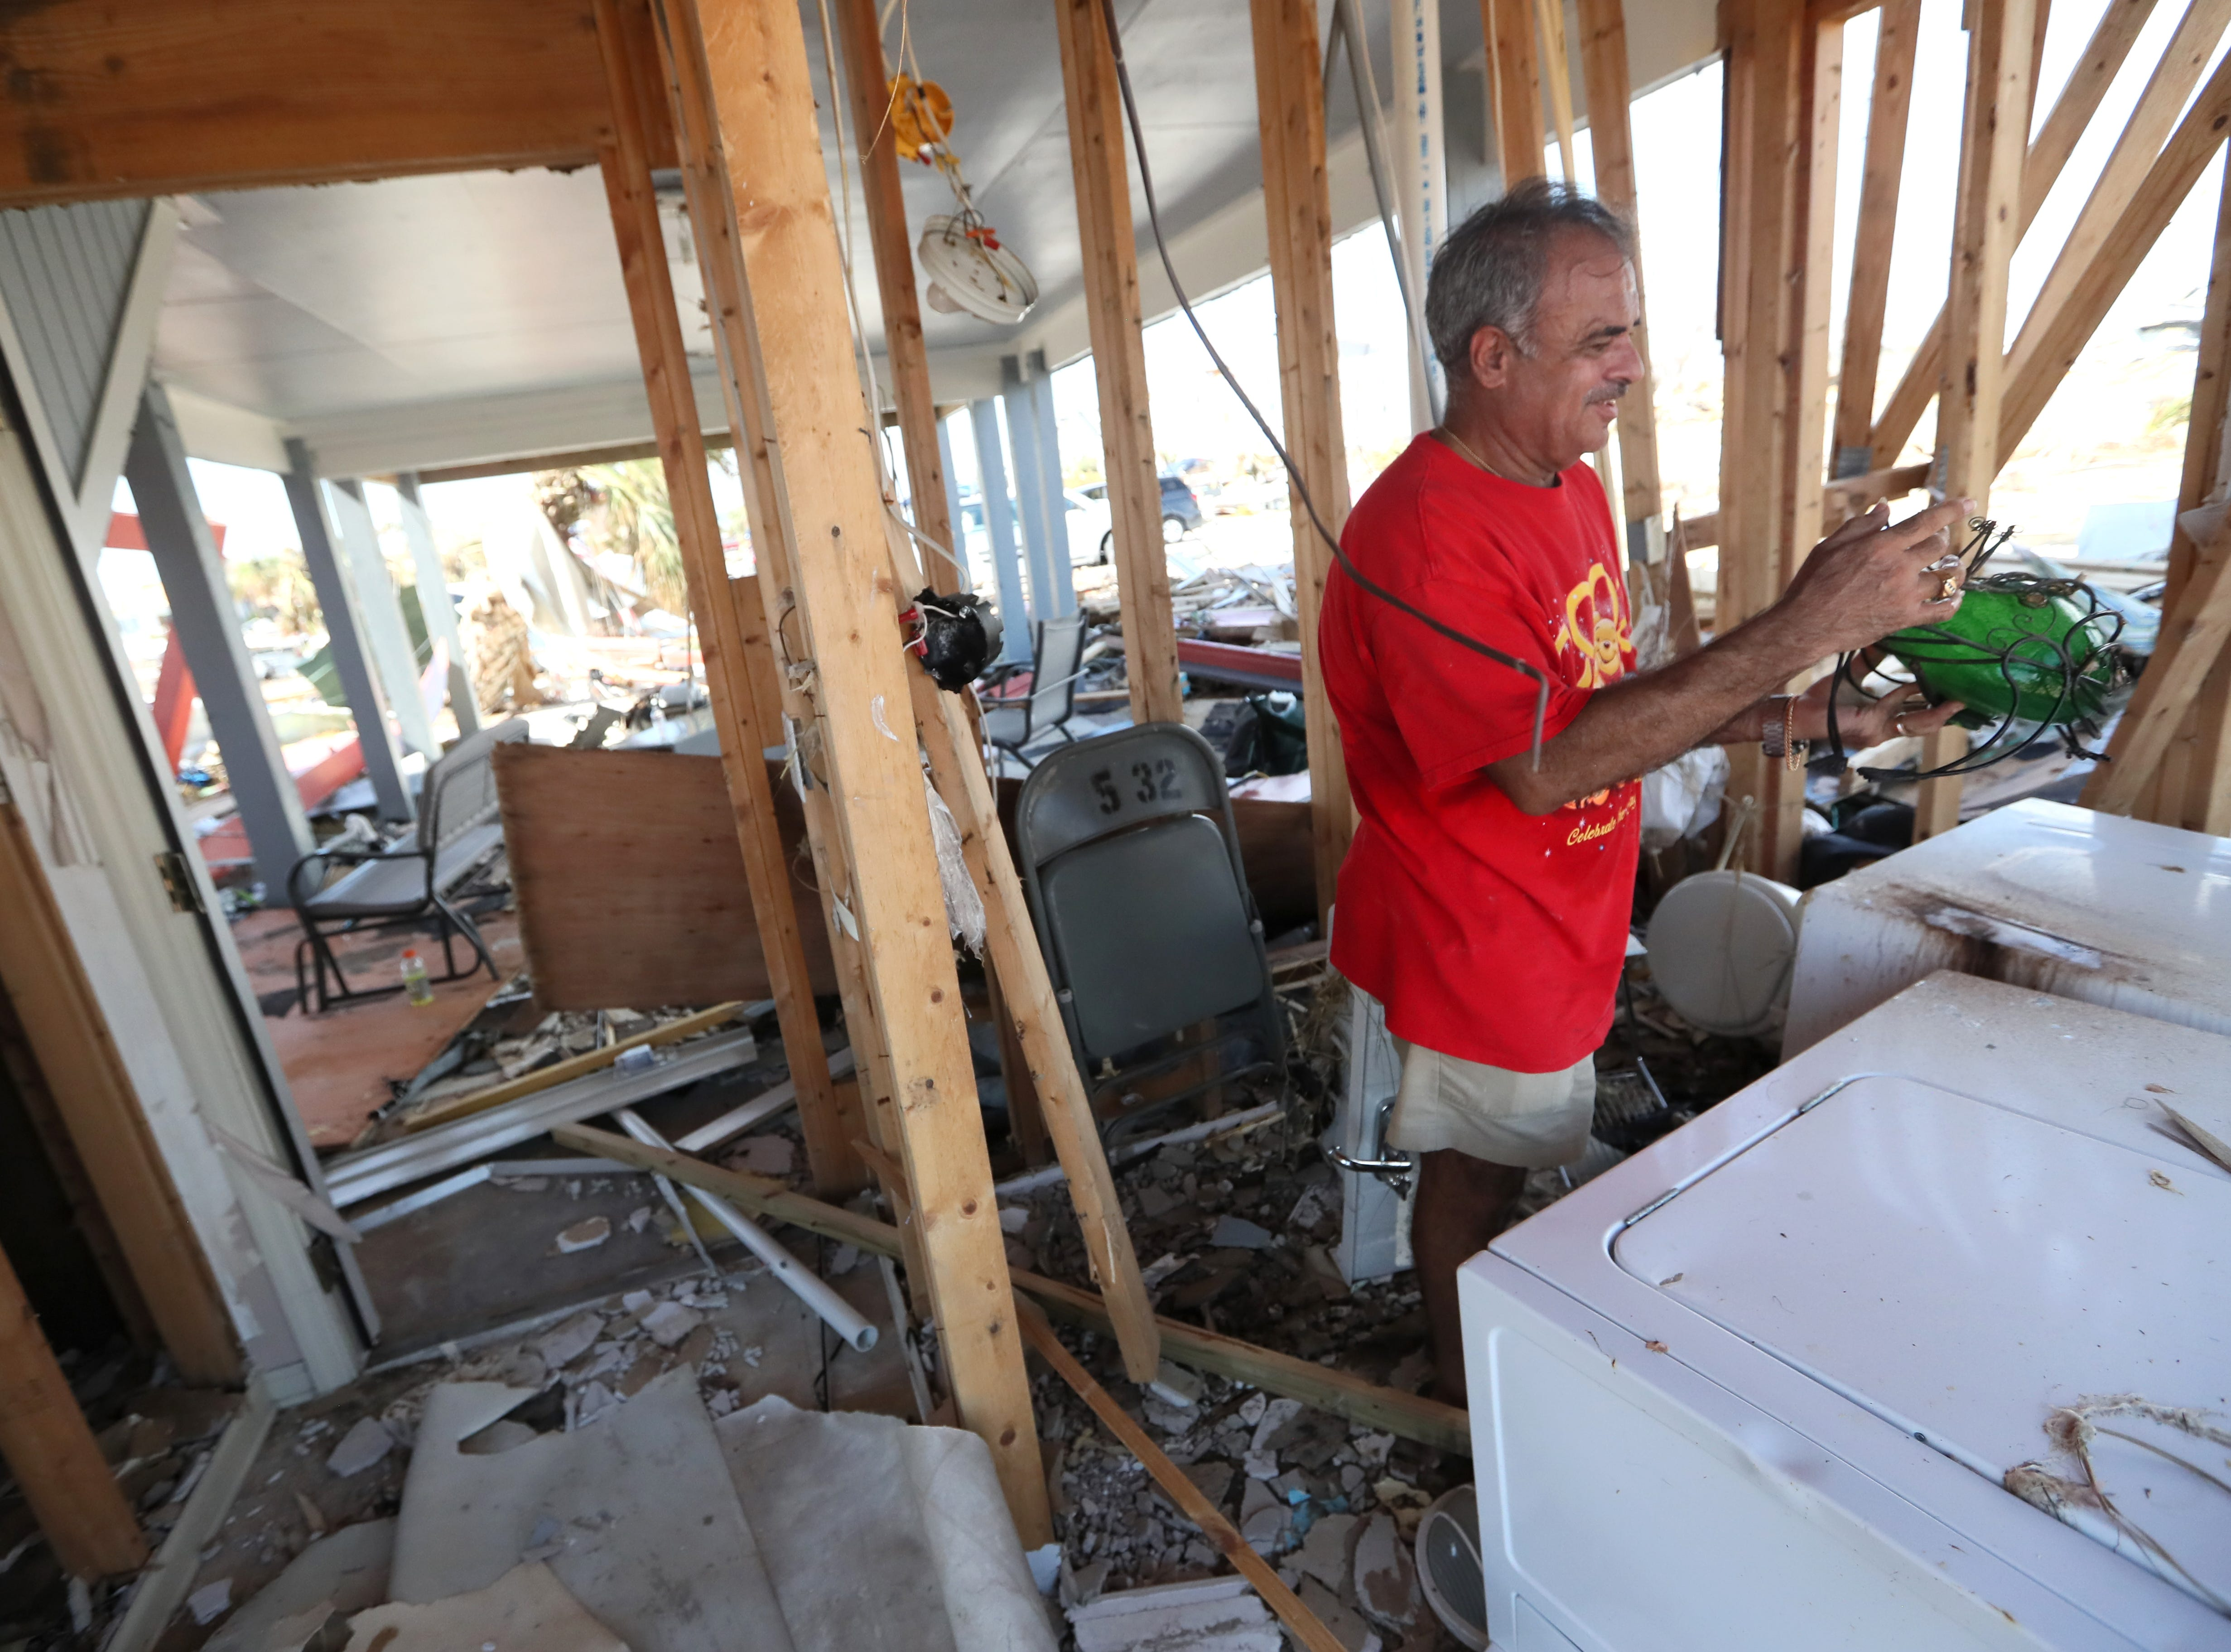 Jaques Sebastiao smiles as he finds a glass frog sculpture he saved from his neighbors yard, still intact, inside of his demolished Mexico Beach home on Wednesday, Oct. 17, 2018, one week after Hurricane Michael ripped through the coastal Florida town. Sebastiao moved in to the home fulltime with his with wife Bela just two months ago.